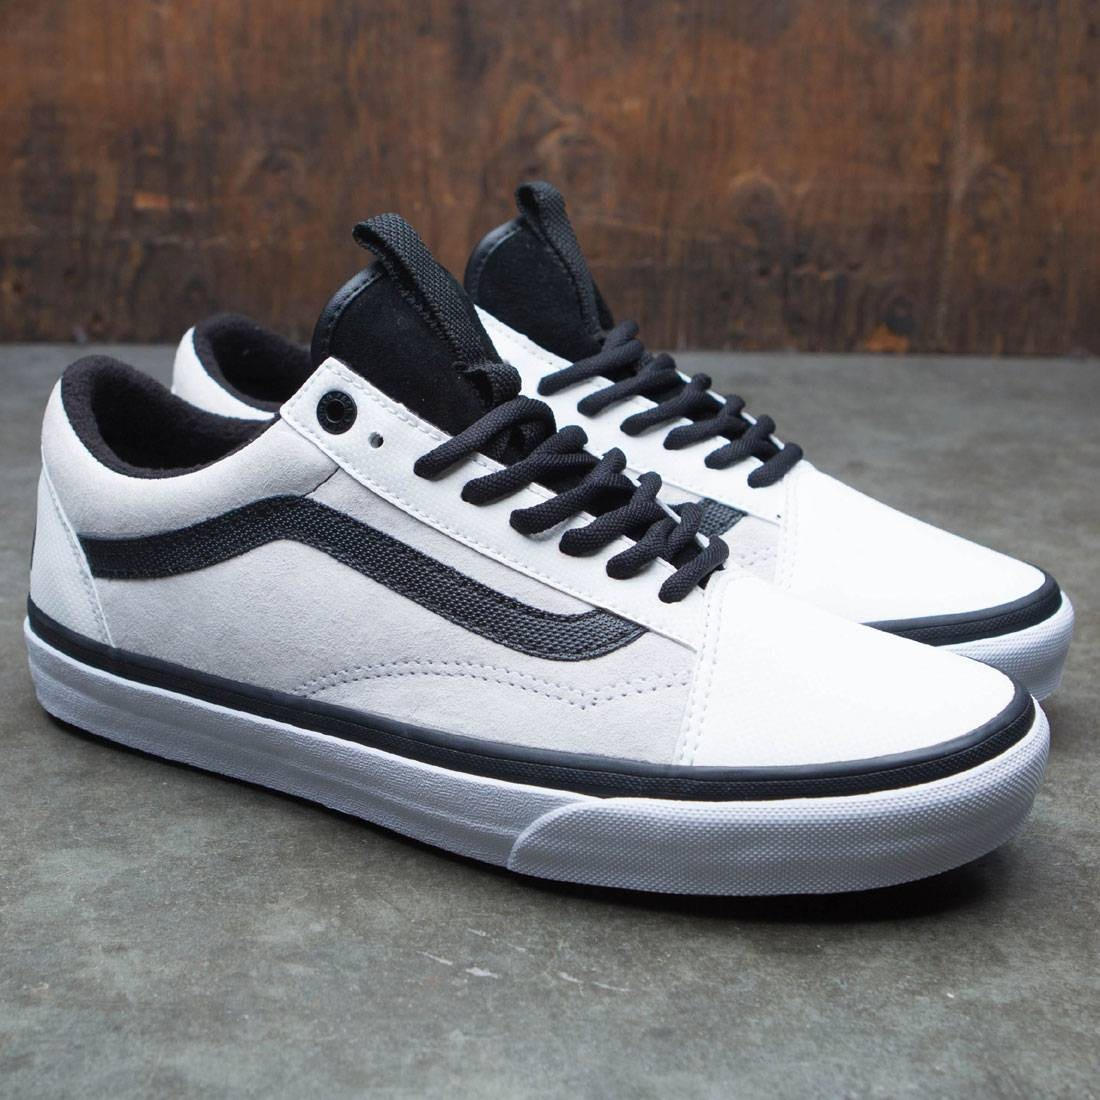 febbb3ada1e4bb Vans x The North Face Men Old Skool MTE DX - MTE (white   black)